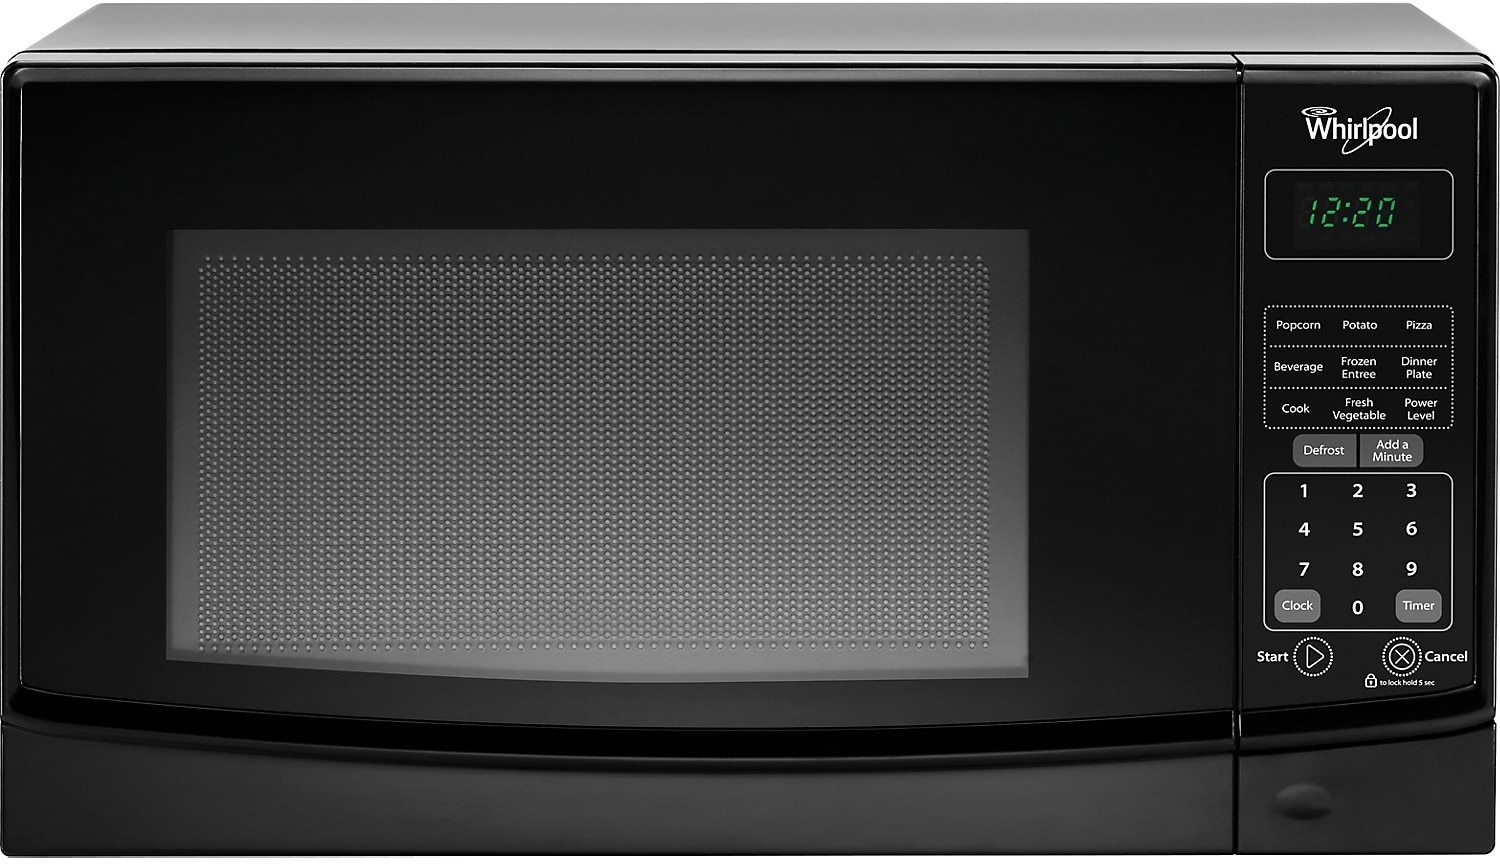 Cooking Products - Whirlpool 0.7 Cu. Ft. Countertop Microwave with Electronic Touch Controls - Black